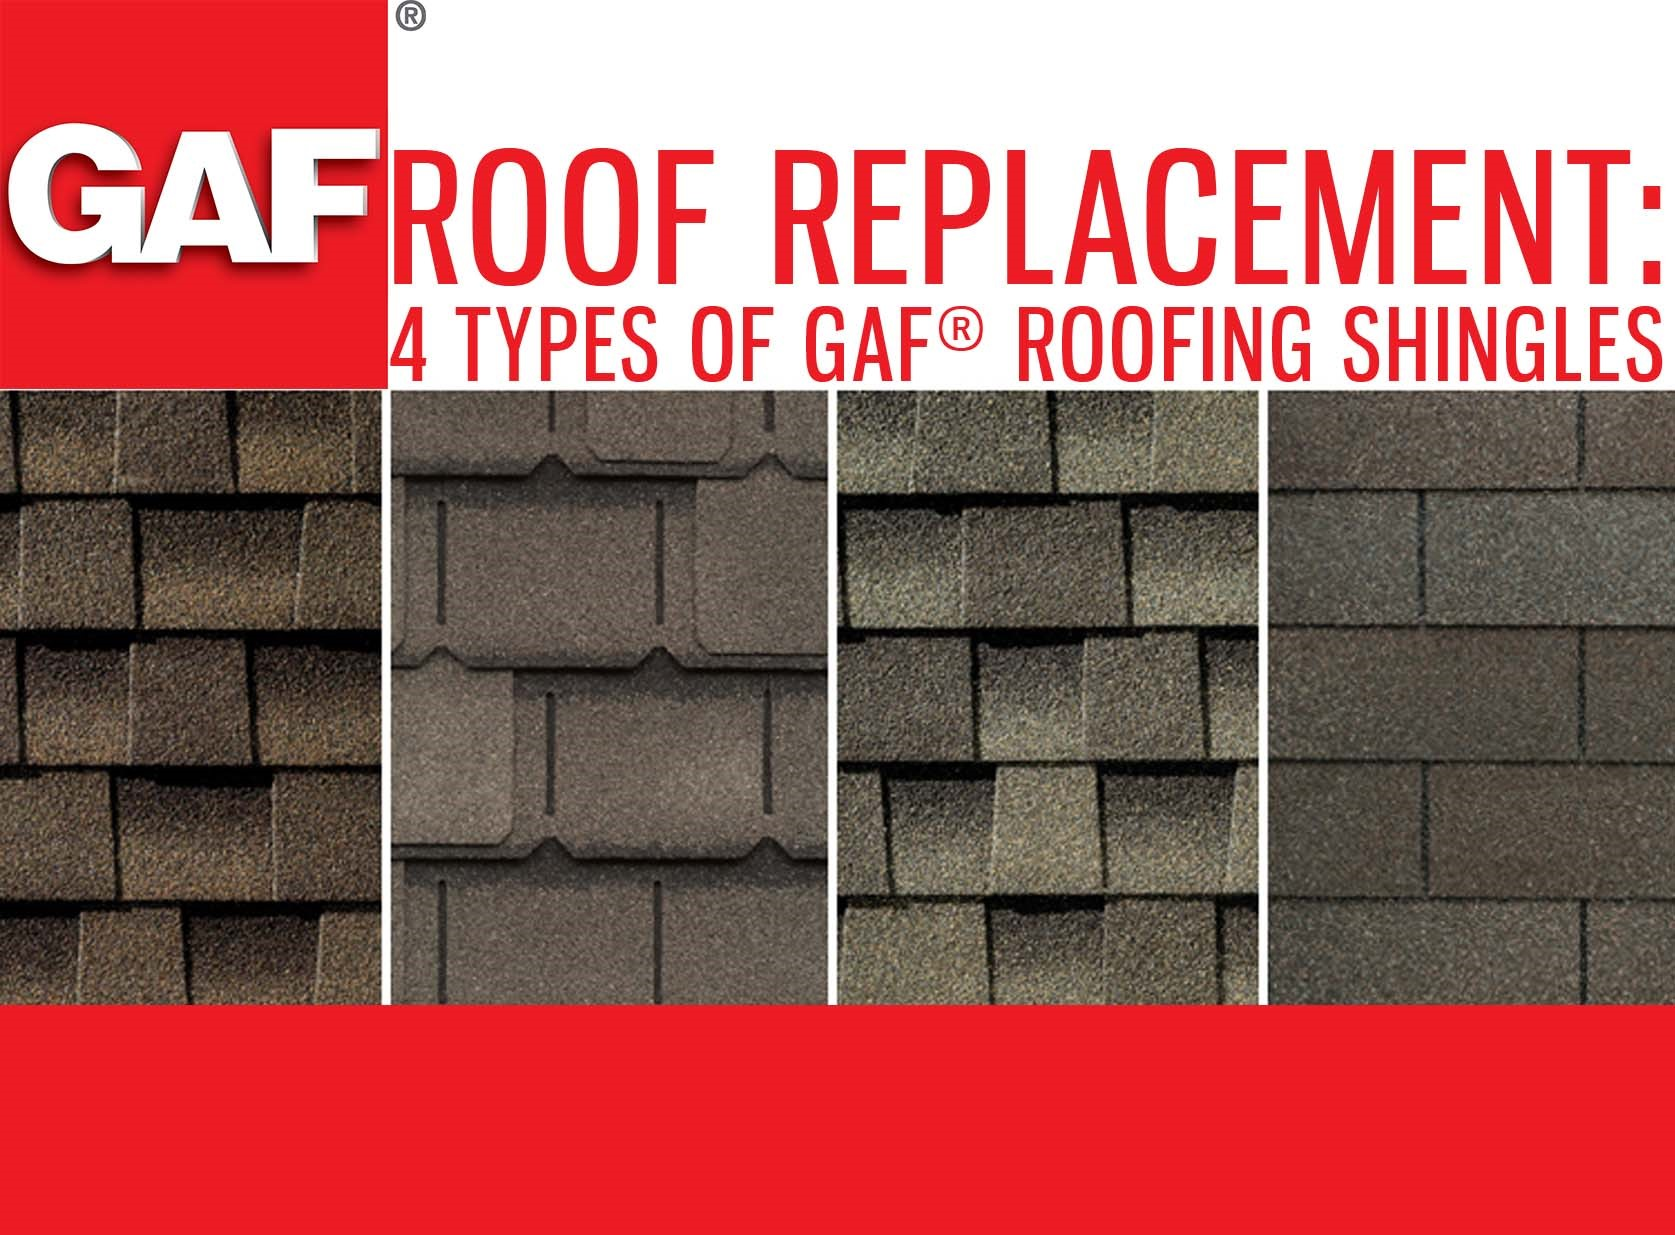 Roof Replacement 4 Types Of Gaf Roofing Shingles